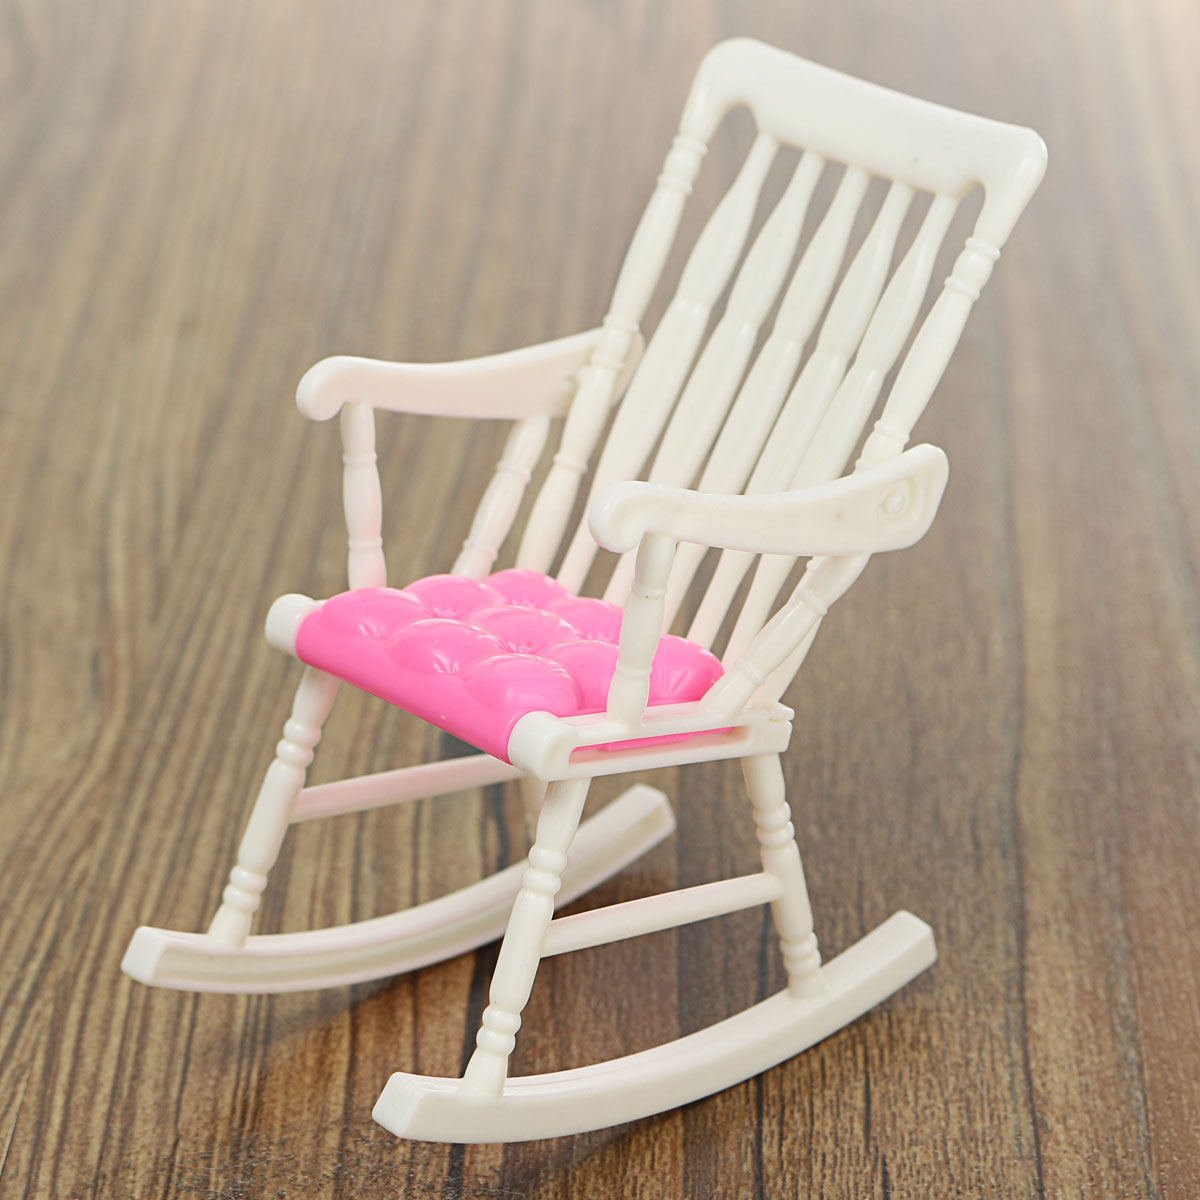 1 Pcs Mini Doll Rocking Chair Accessories For Doll House